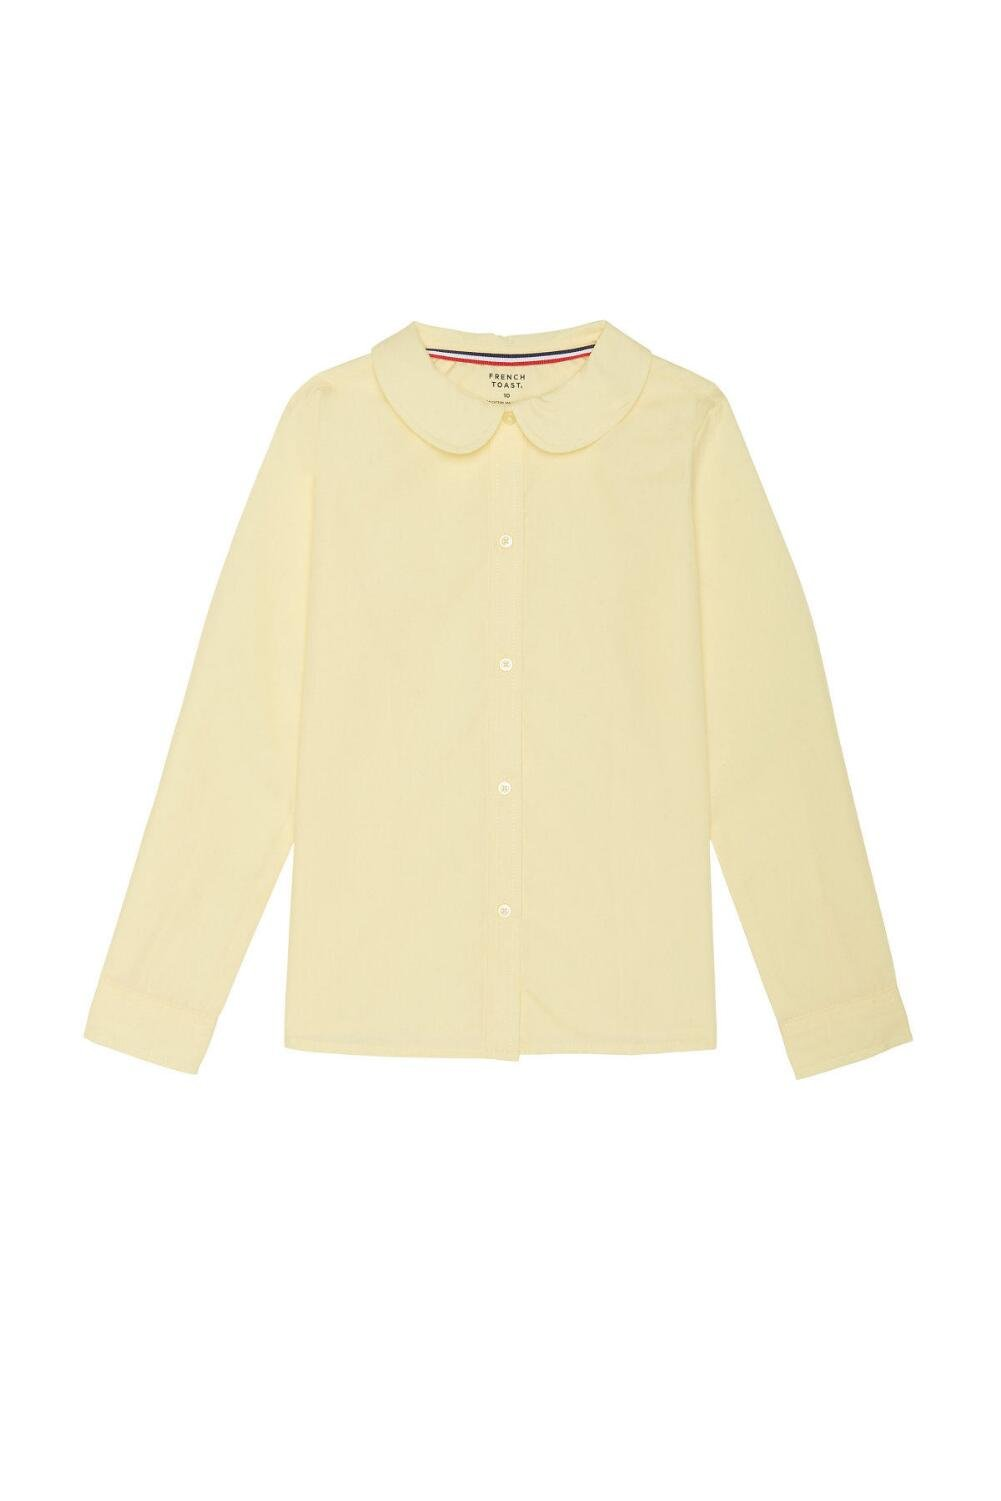 French Toast Toddler Girls' Long Sleeve Modern Peter Pan Collar Blouse, Yellow, 2T by French Toast